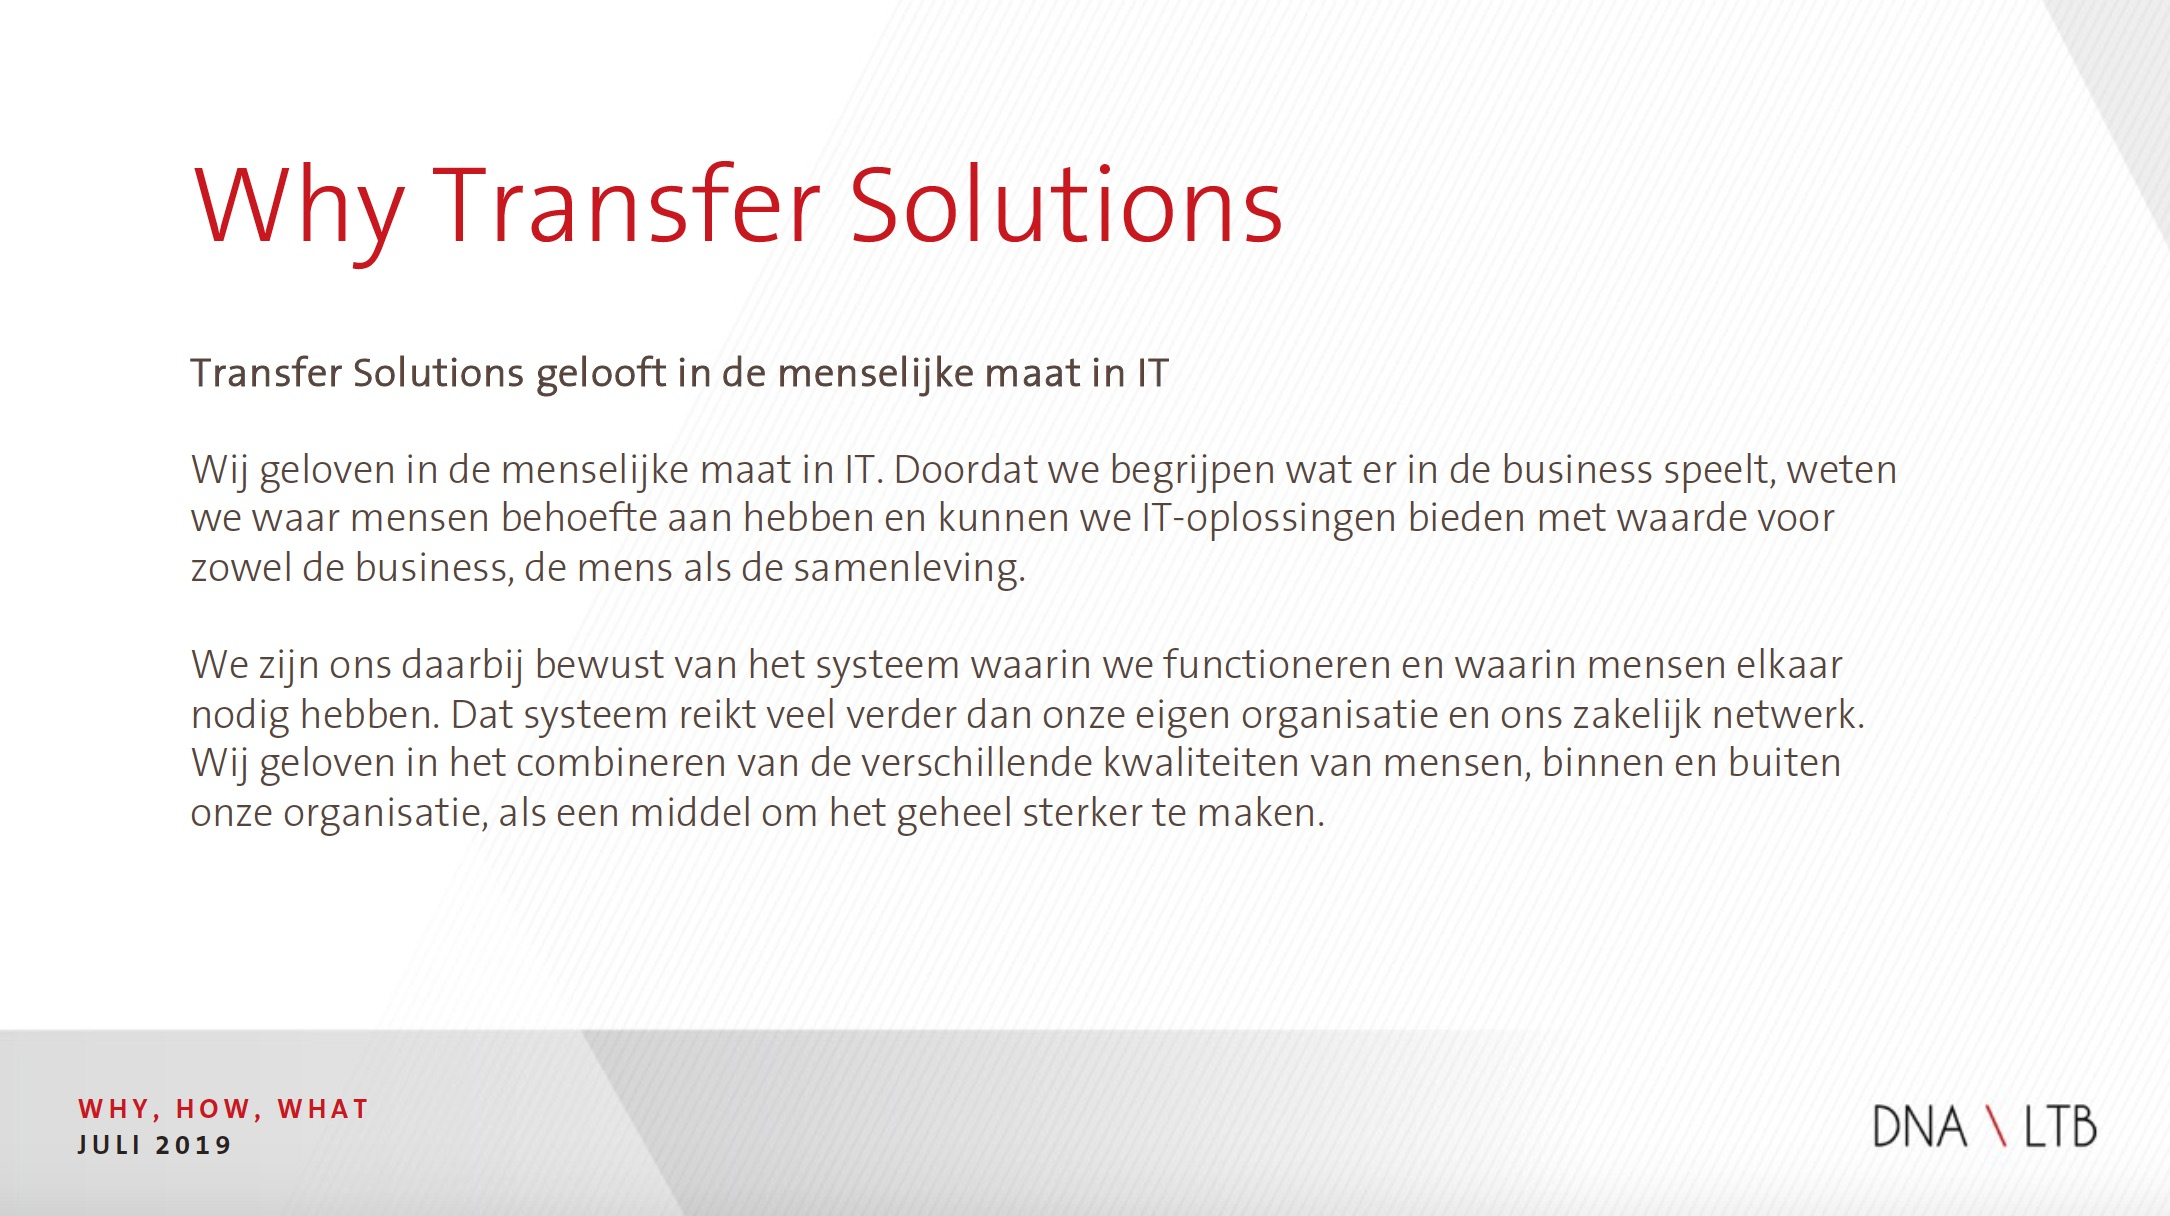 Why Transfer Solutions